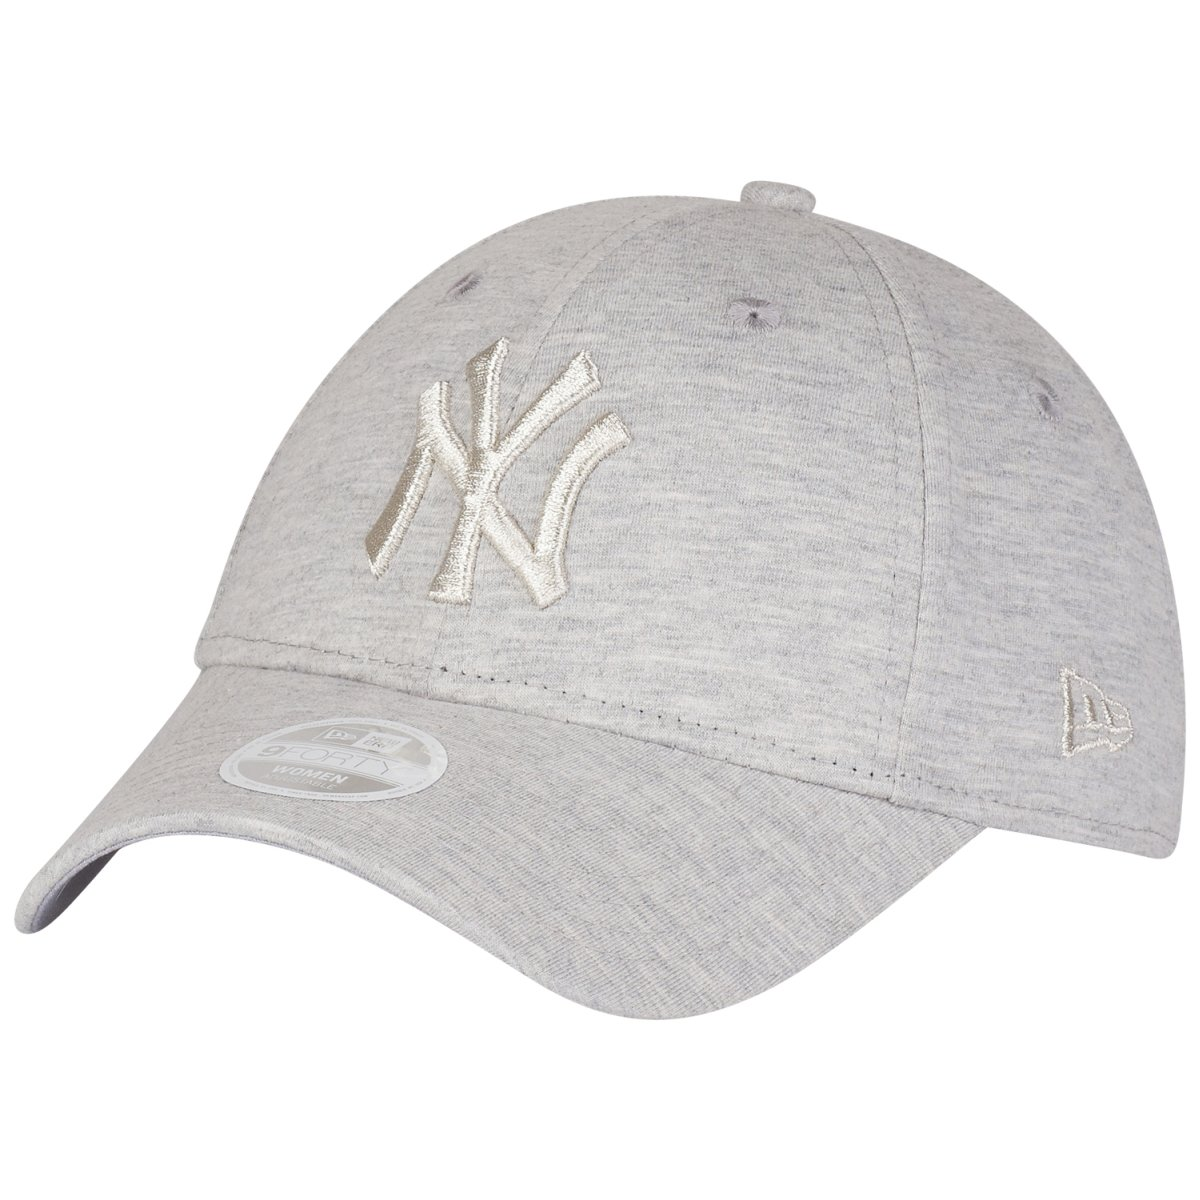 Details about New Era 9Forty Ladies Cap - JERSEY New York Yankees grey ba43f1249d0c